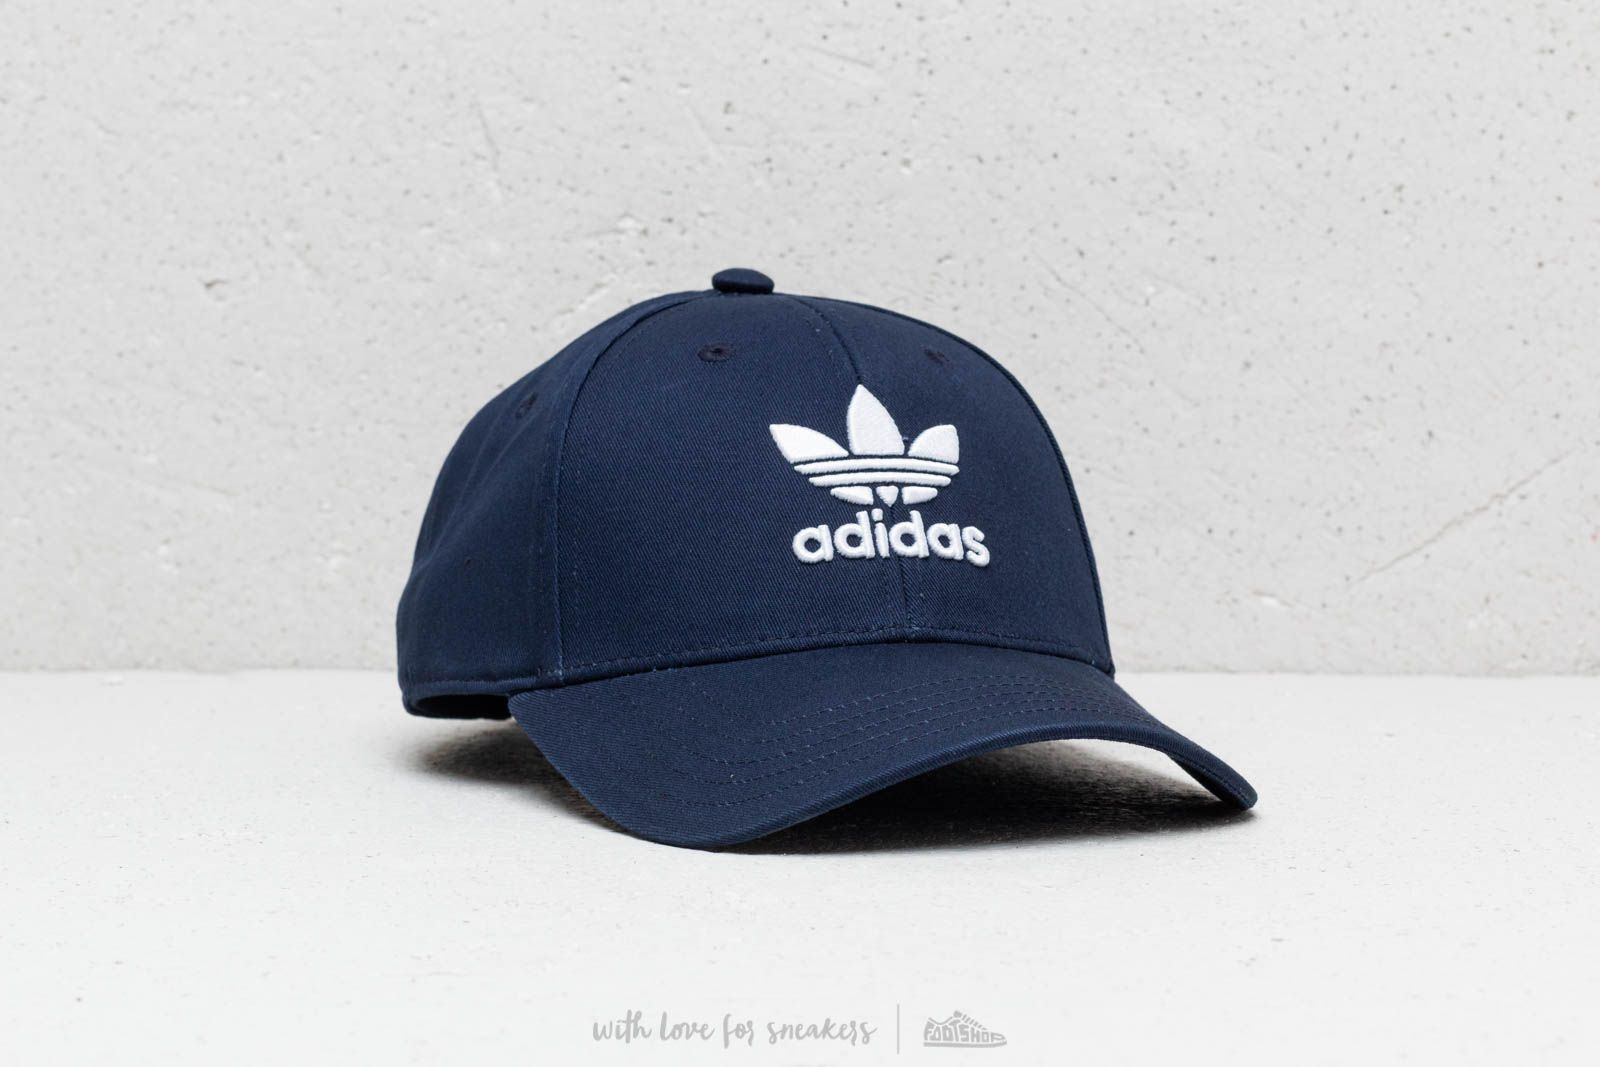 adidas Trefoil Baseball kšiltovka Collegiate Navy / White at a great price 20 € buy at Footshop